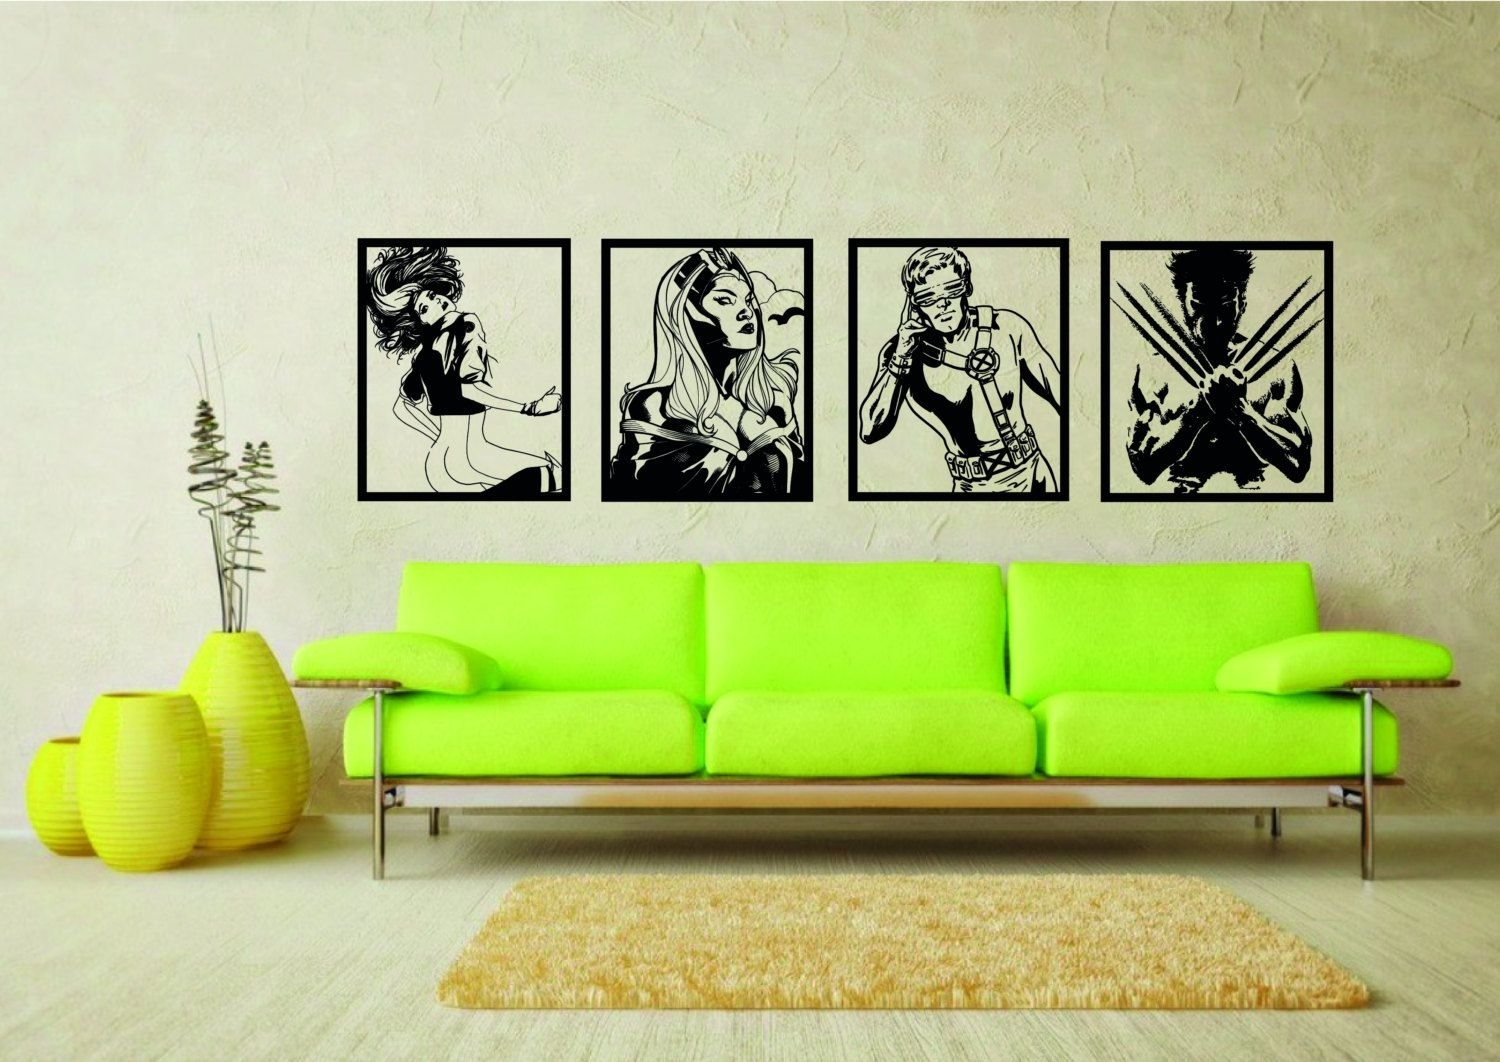 Large #marvel Comics X Men Wall Art #stickers – #vinyl Sticker Mural Pertaining To Current Wall Art For Men (View 6 of 15)